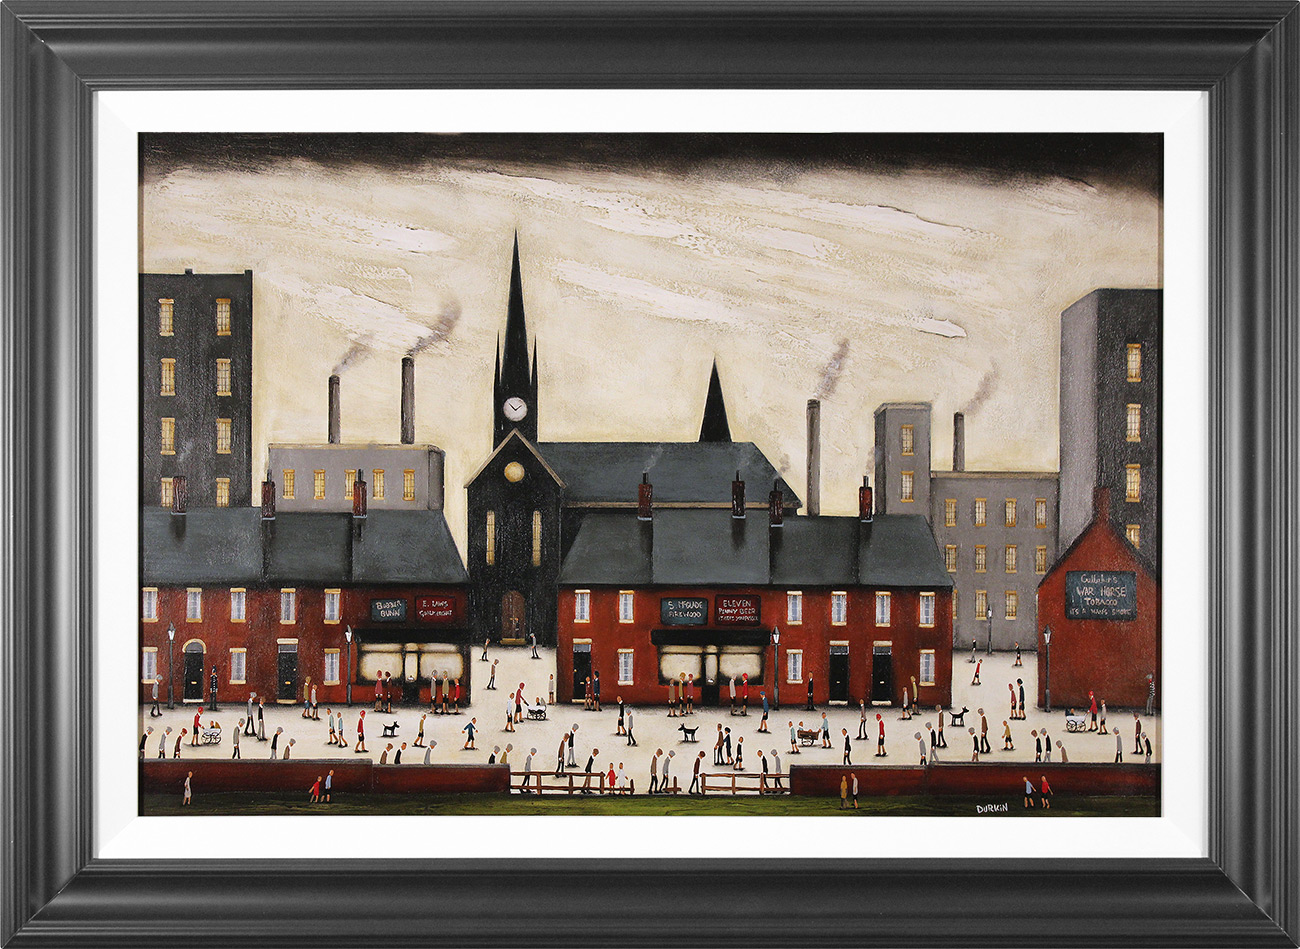 Sean Durkin, Original oil painting on panel, Tales of the Town Click to enlarge